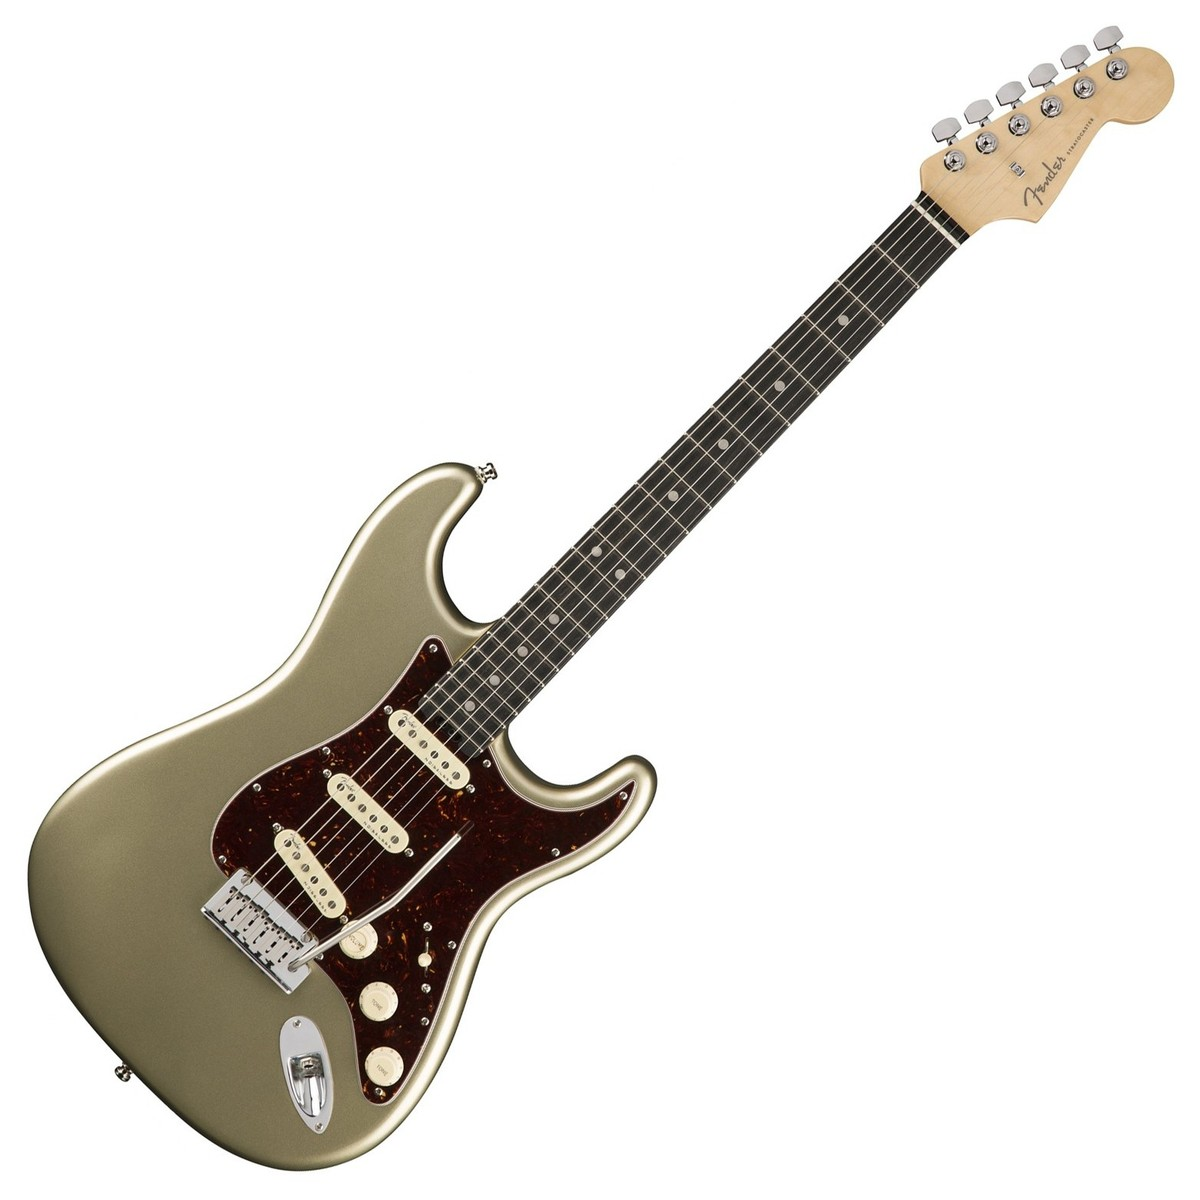 bf6932d636 Fender American Elite Stratocaster Ebony, Champagne at Gear4music